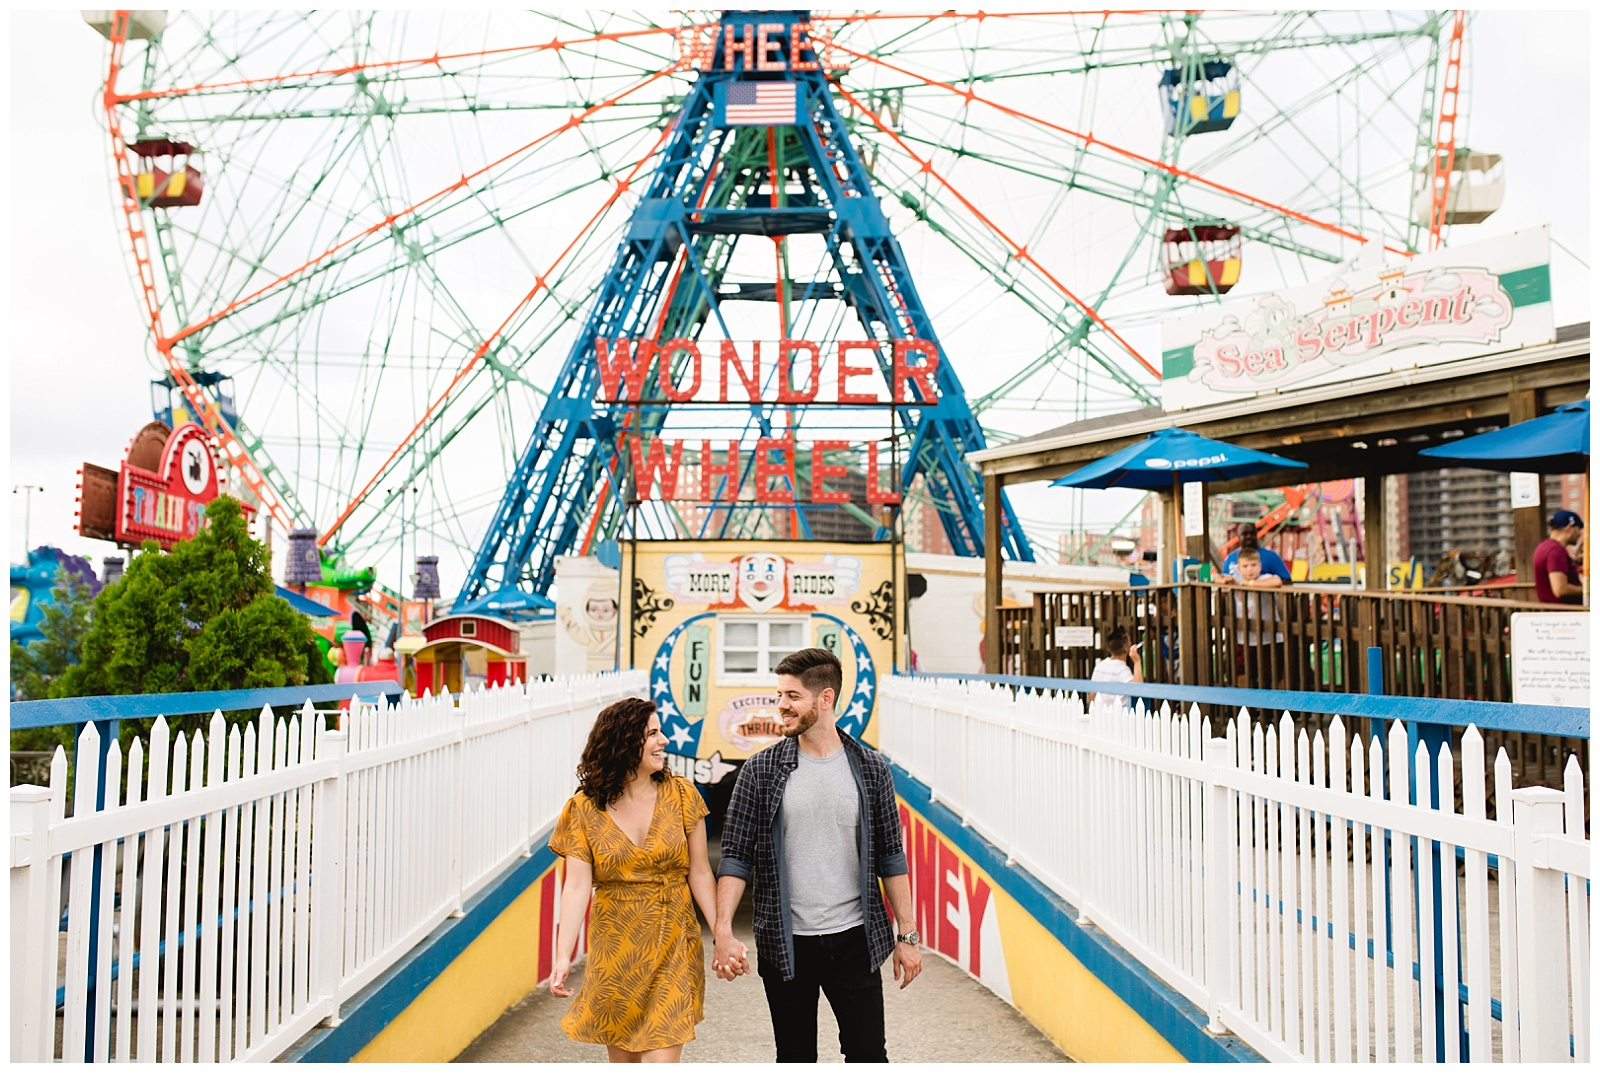 coney island engagement photography brooklyn photos brooklyn engagement photos brooklyn engagement pictures coney island engagement pics coney island boardwalk